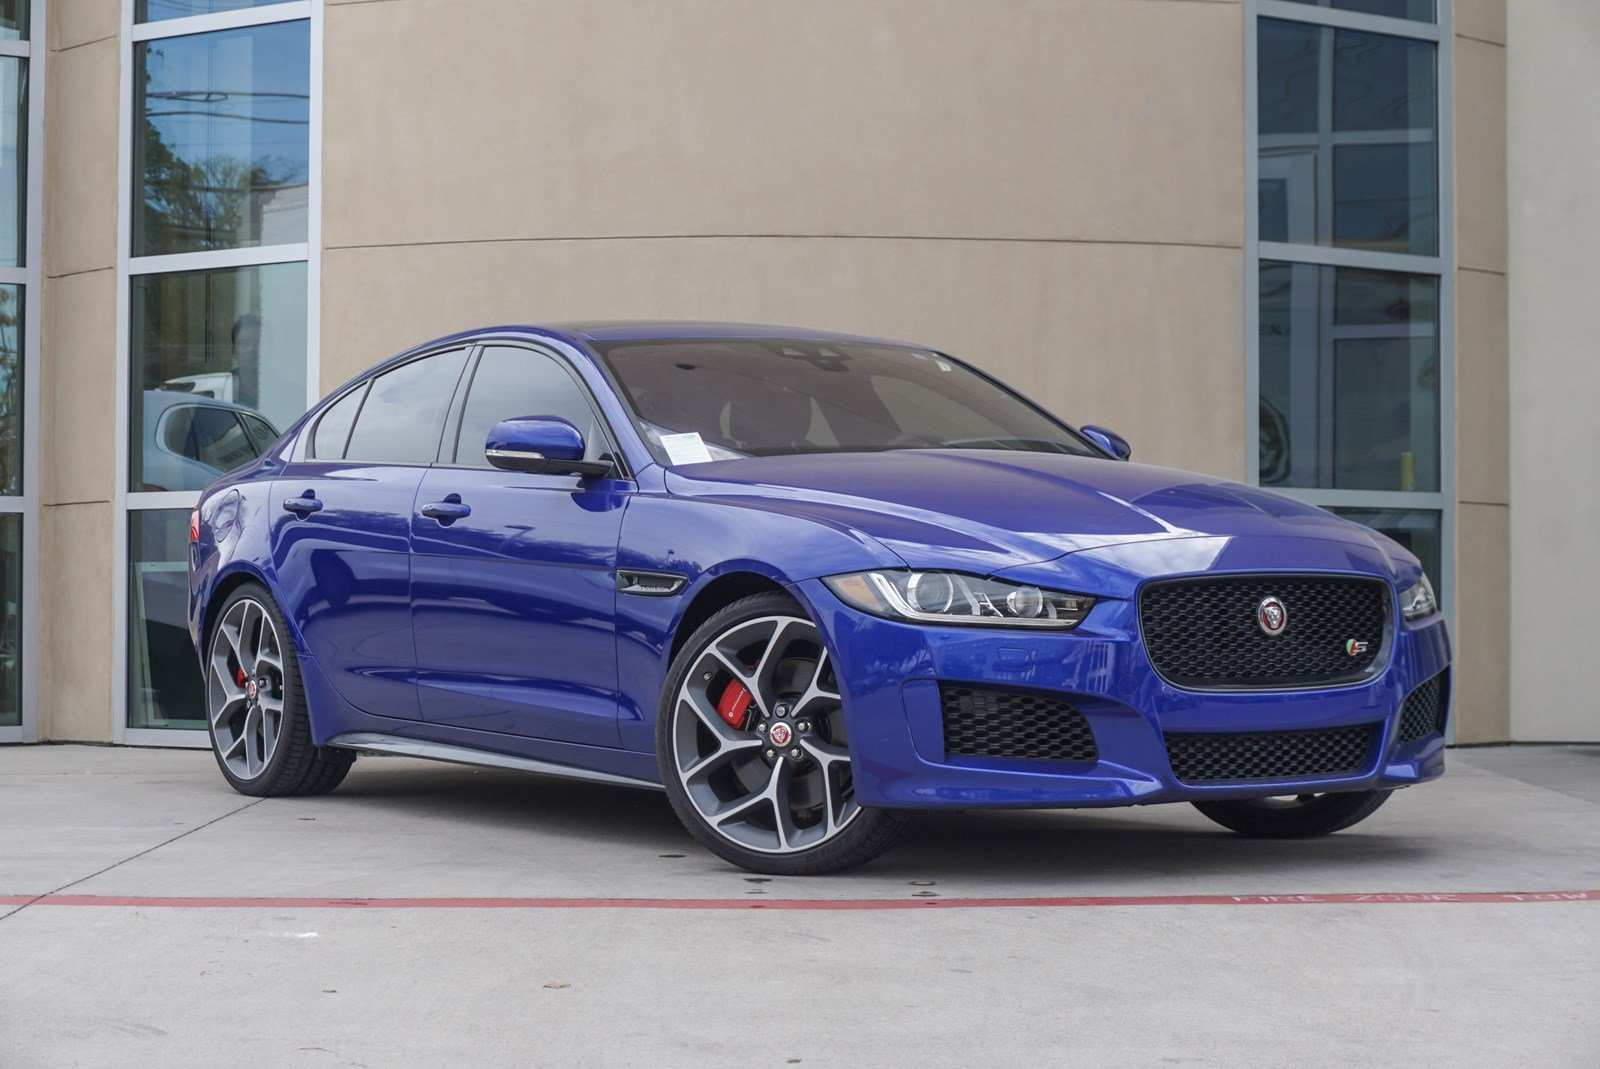 39 Best 2019 Jaguar XE Review